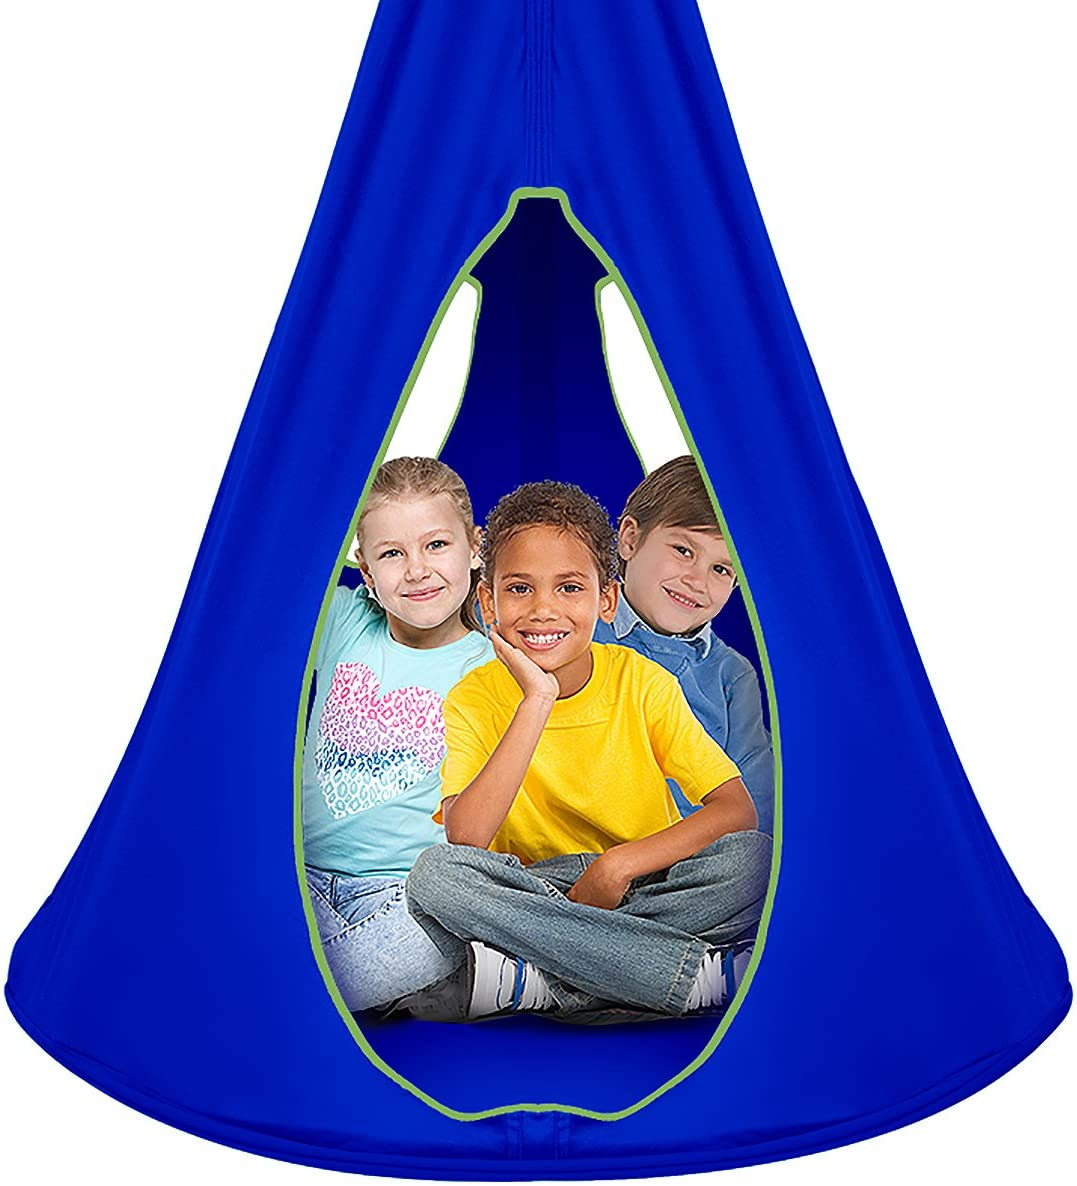 Amazon Com Sorbus Kids Nest Swing Chair Nook Hanging Seat Hammock For Indoor Outdoor Use Great For Children 40 Inch Nest Blue Furniture Decor